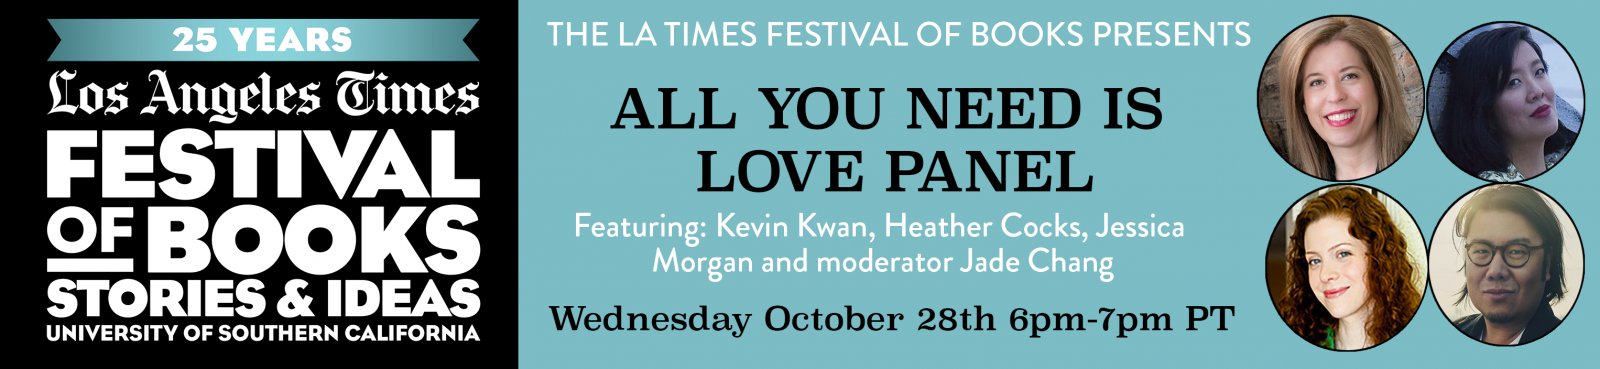 The L.A. Times Festival of Books presents Fiction: All You Need is Love Panel on Wednesday October 28th from 6pm-7pm PT